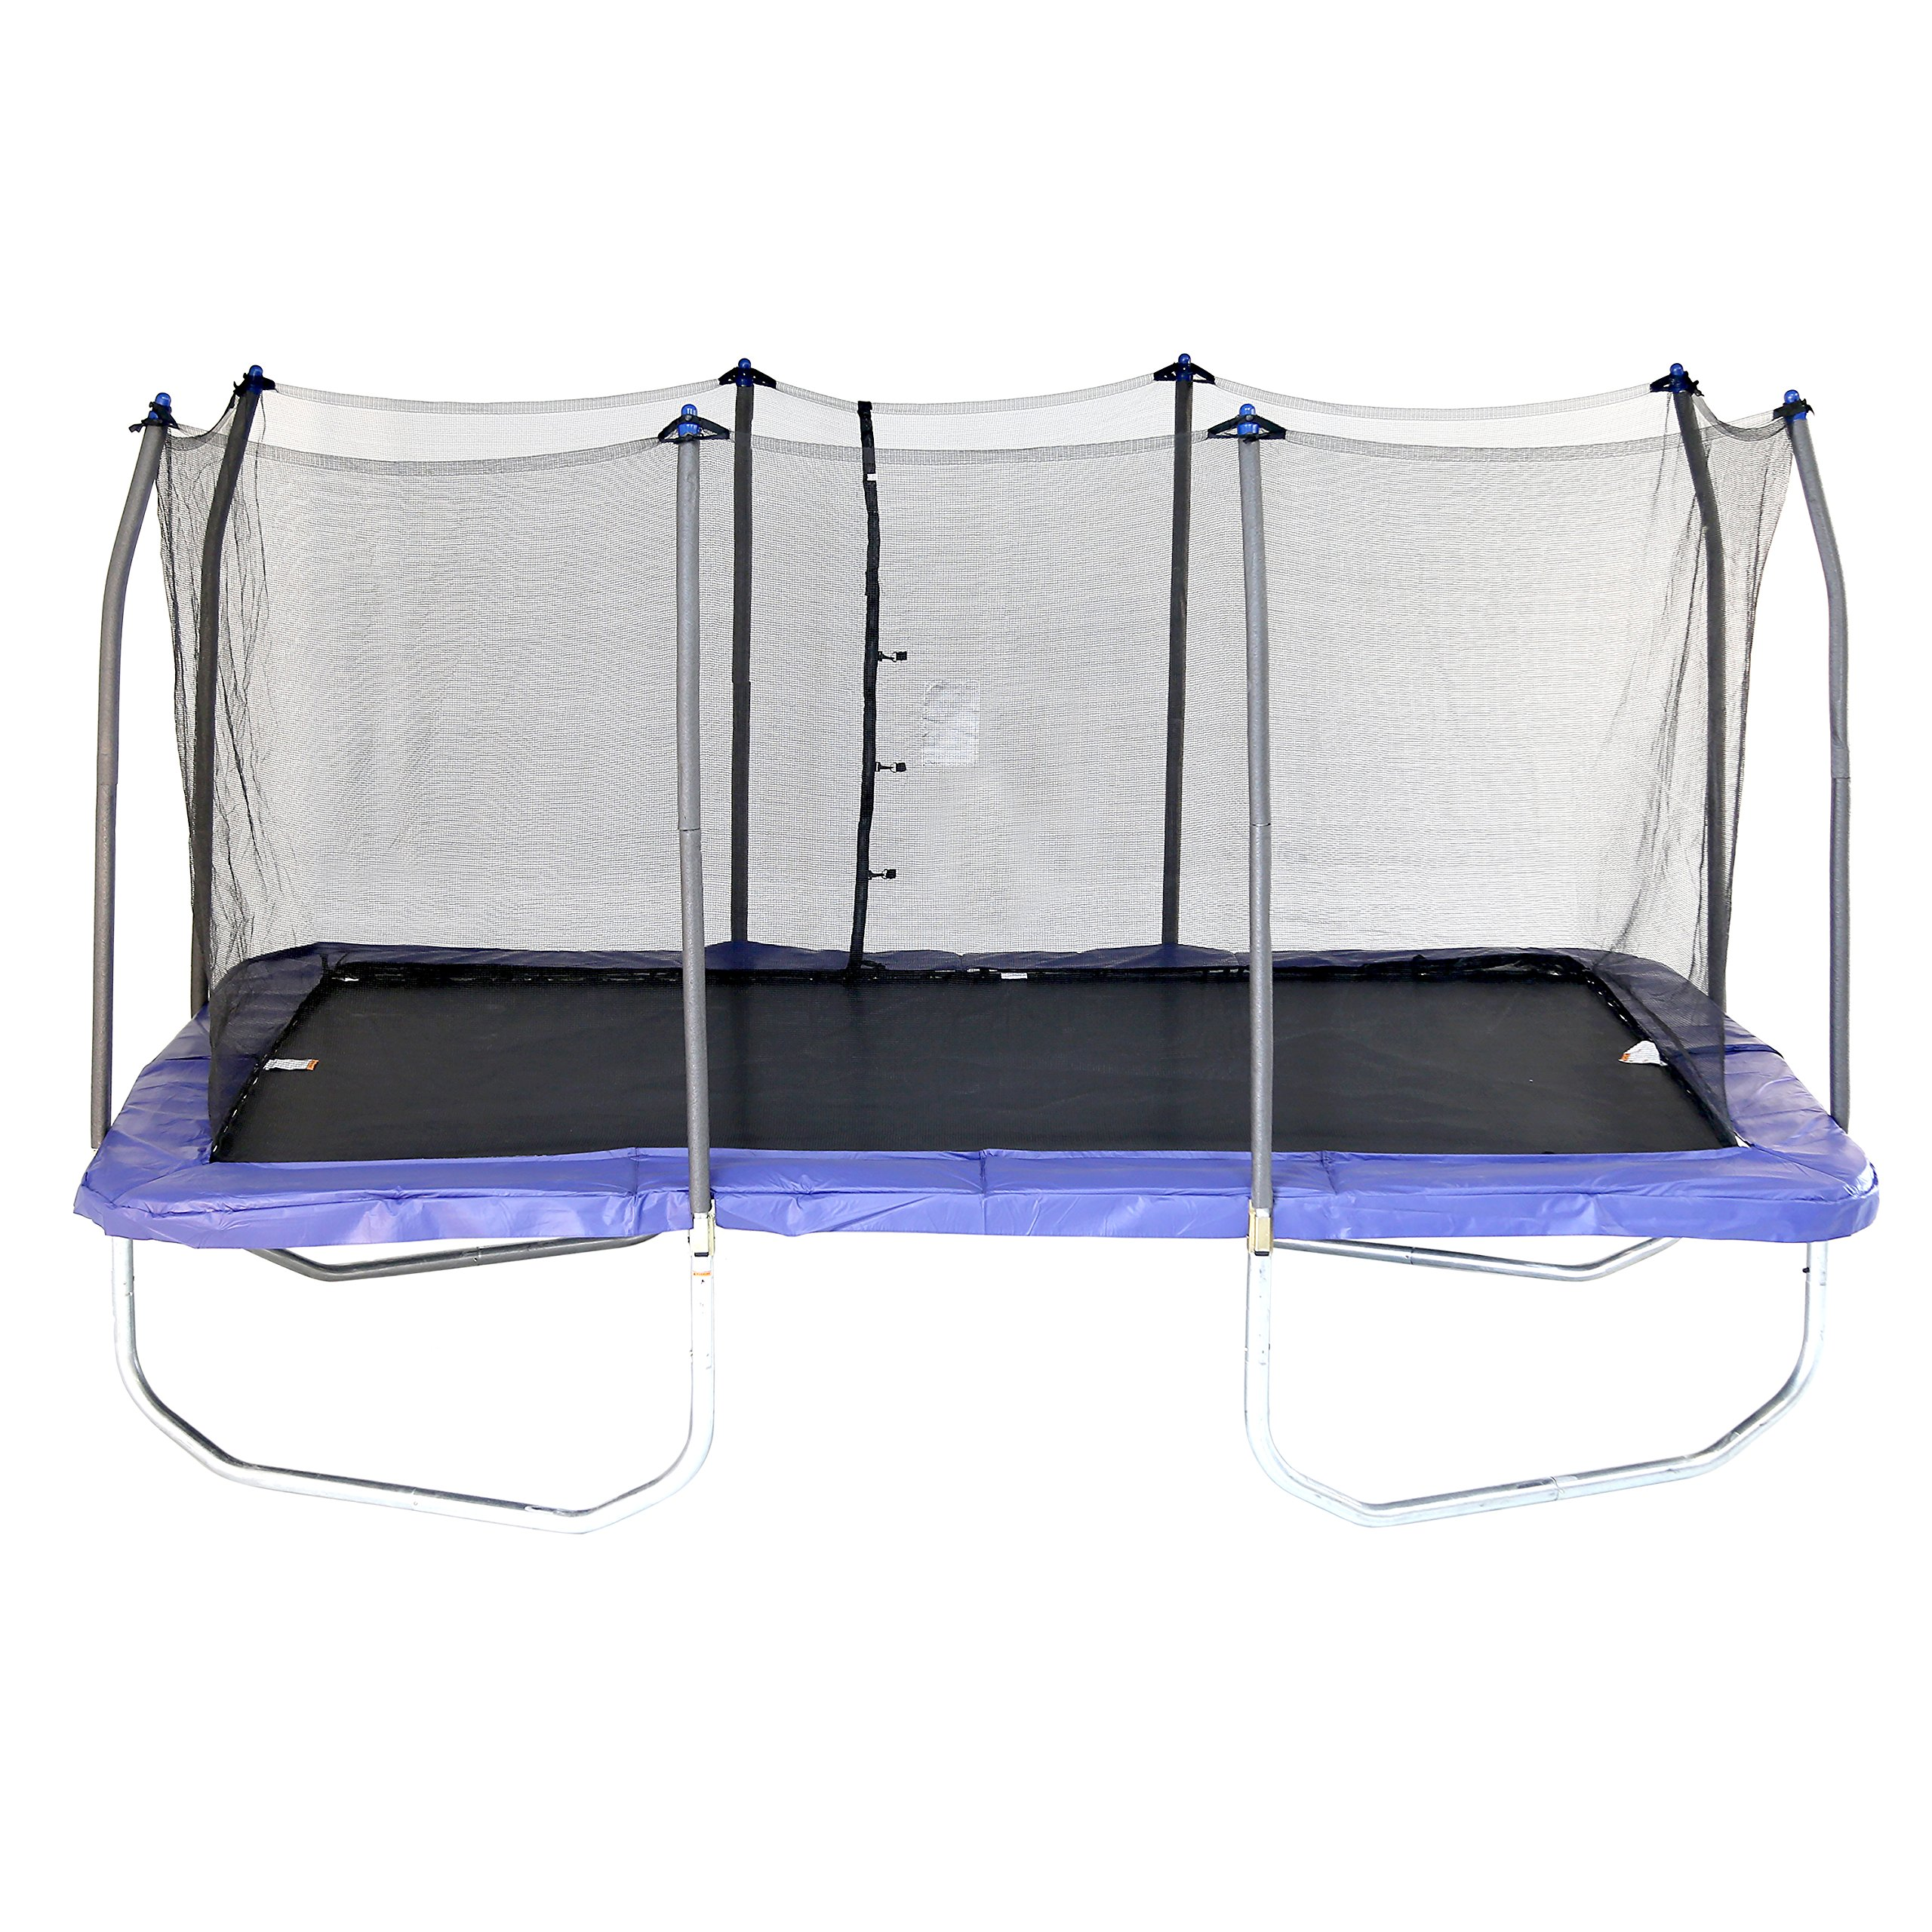 Skywalker Trampolines 15-Foot Rectangle Trampoline with Enclosure Net - Shape Provides Great Bounce - Gymnast Trampoline - Added Safety Features - Meets or Exceeds ASTM - Made to Last by Skywalker Trampolines